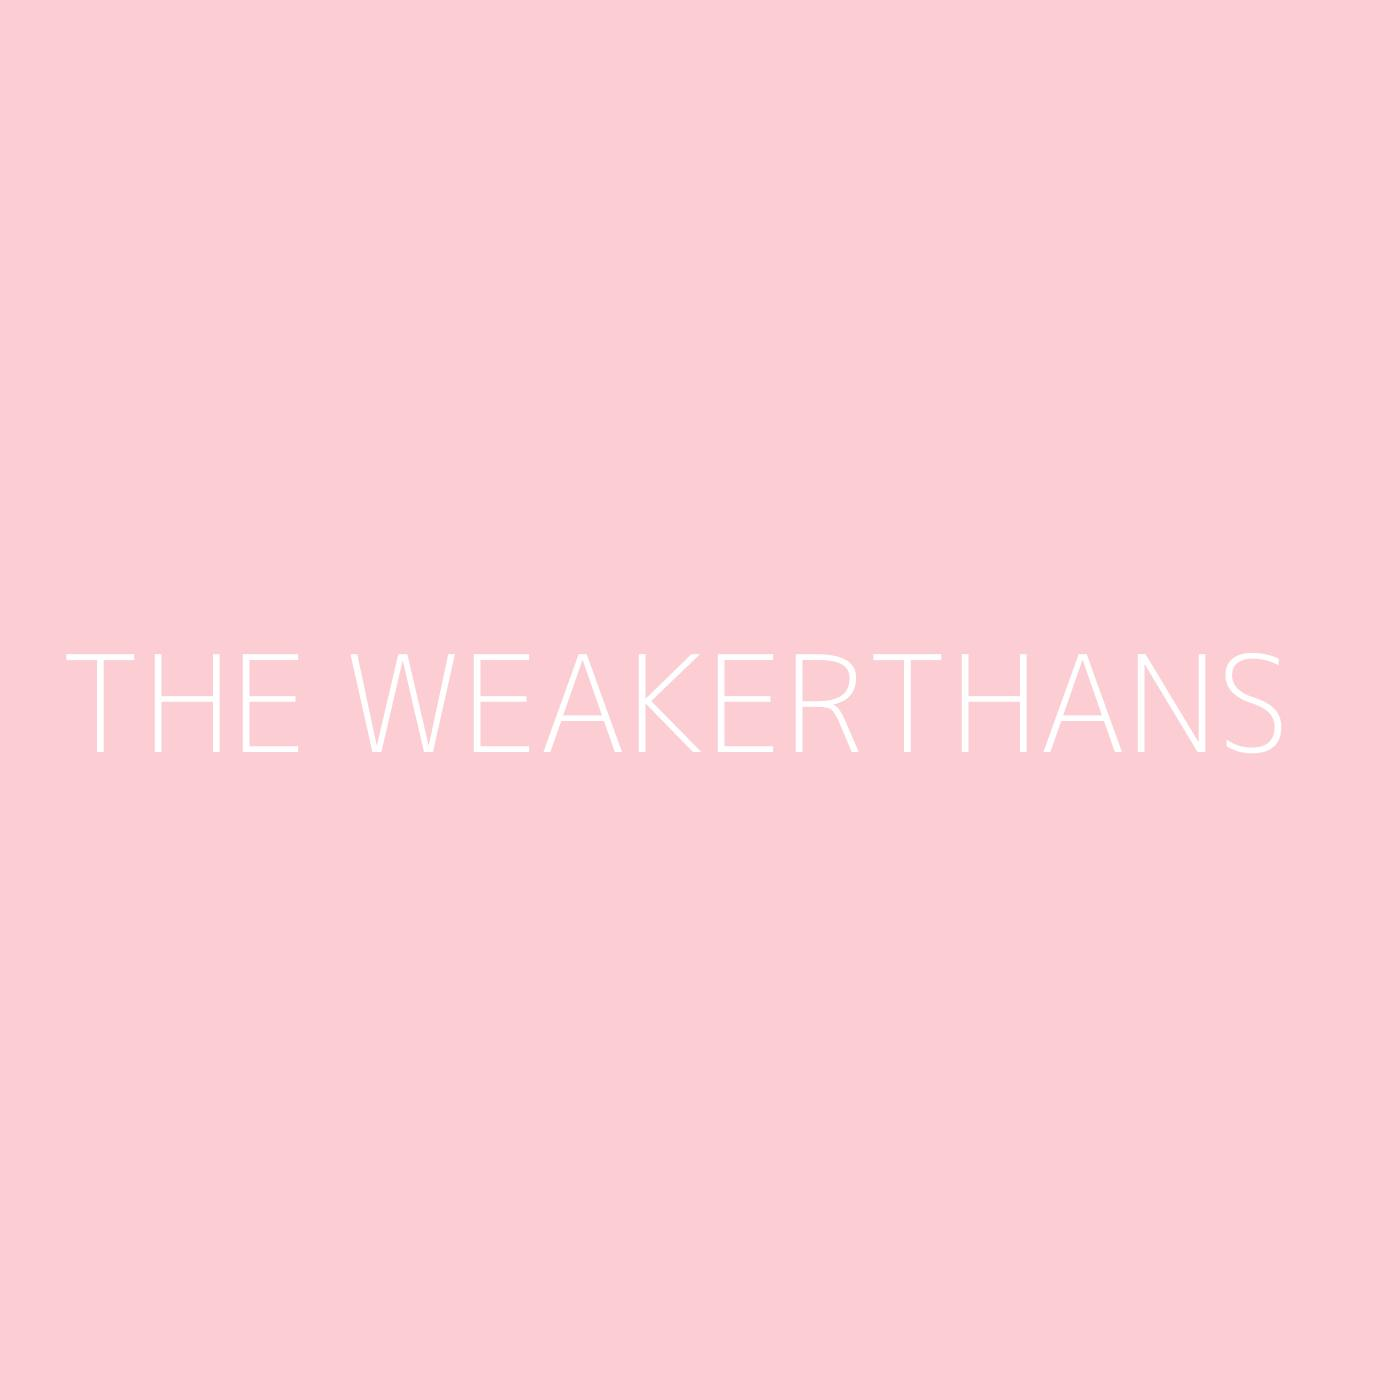 The Weakerthans Playlist Artwork